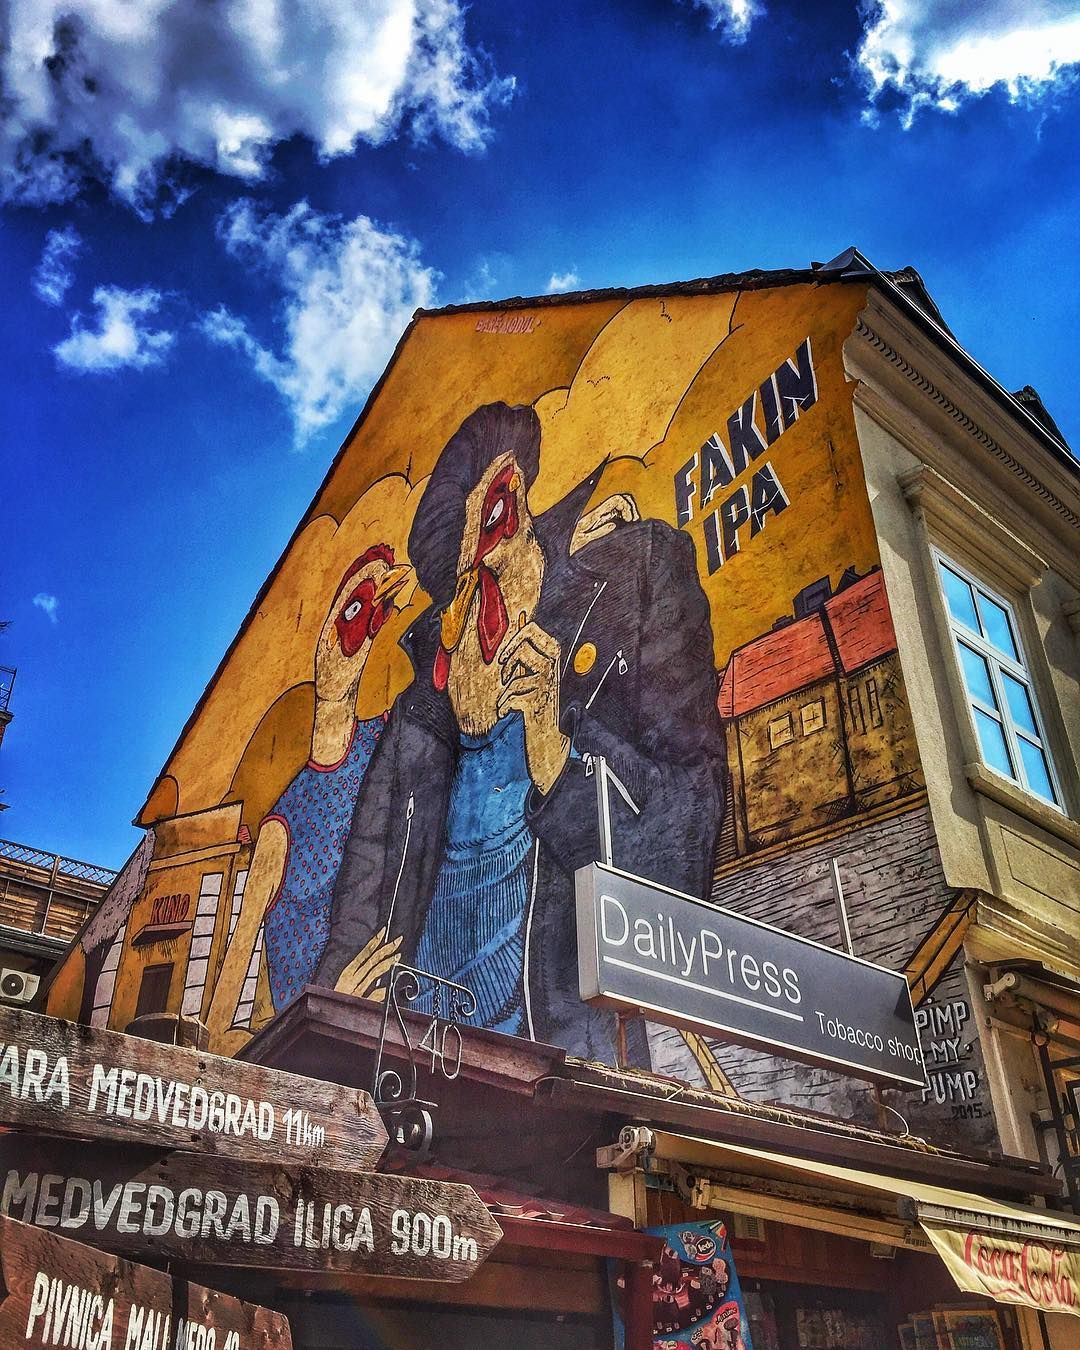 New The 10 Best Art With Pictures Streets Of Zagreb City Street Streetart Art Artsy Graffiti Instagraffiti Street Art City Art International Art